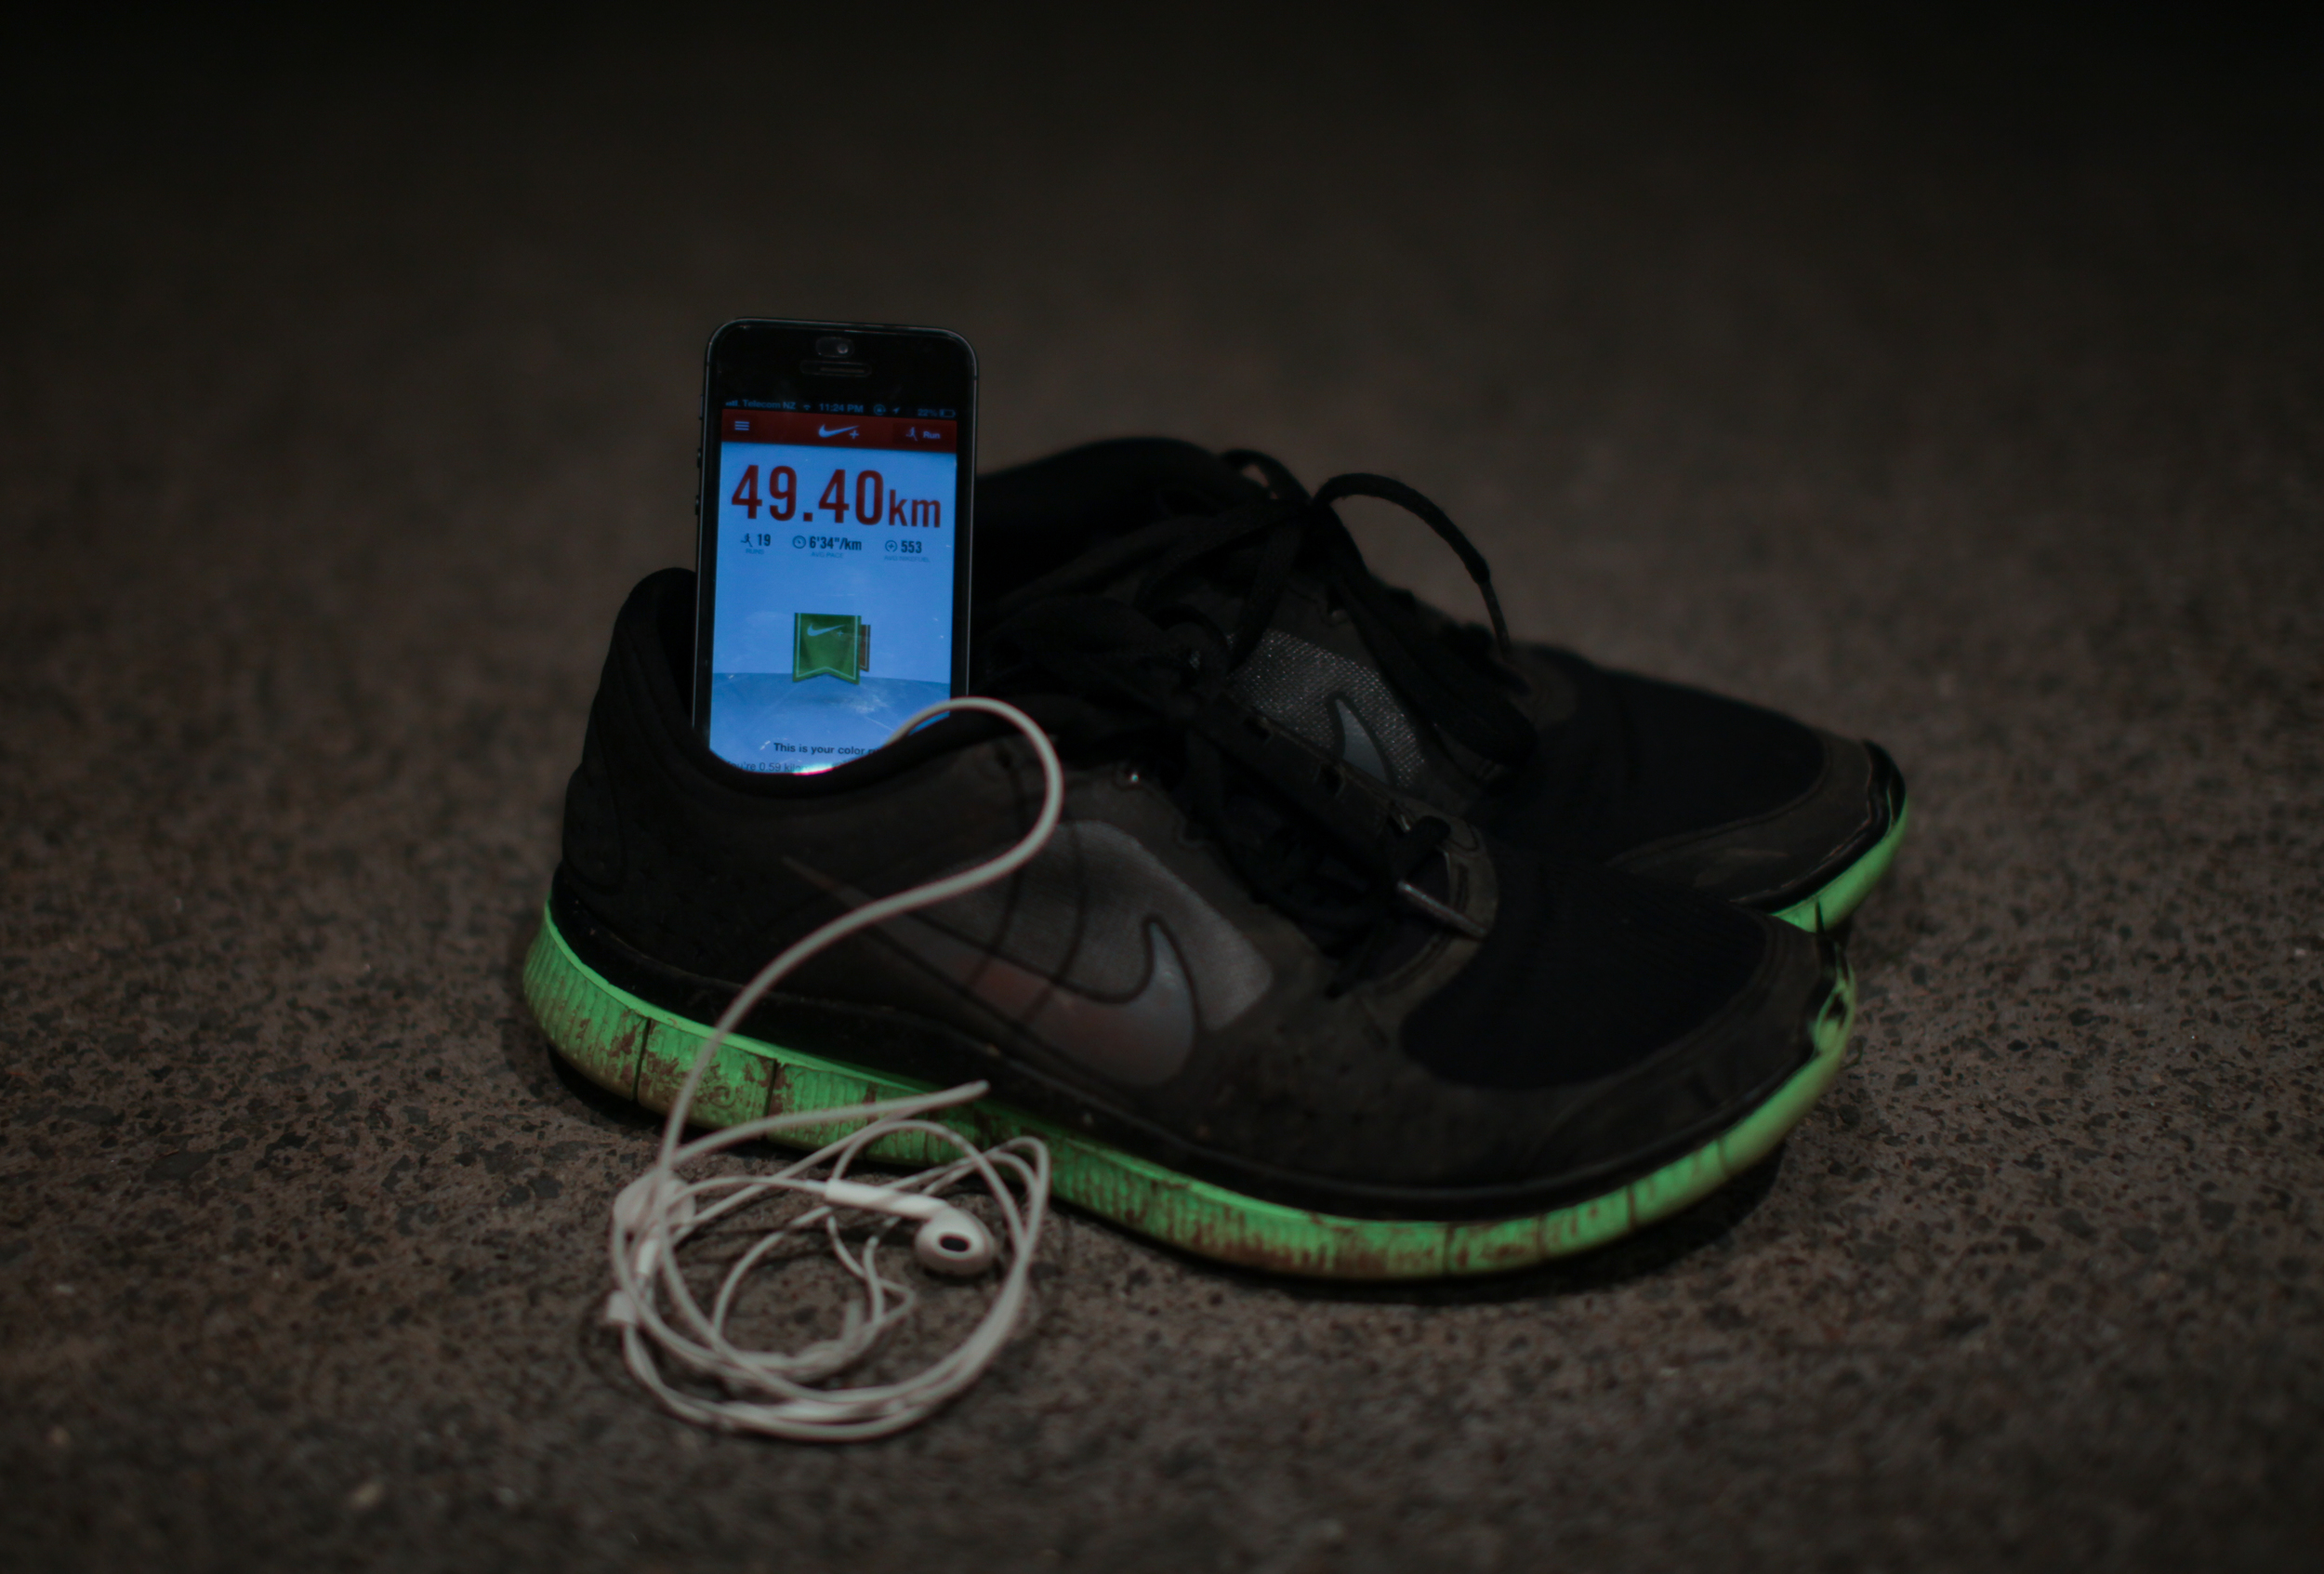 Some of the gear I use: The NIke + Running App and Nike Free's 3.0